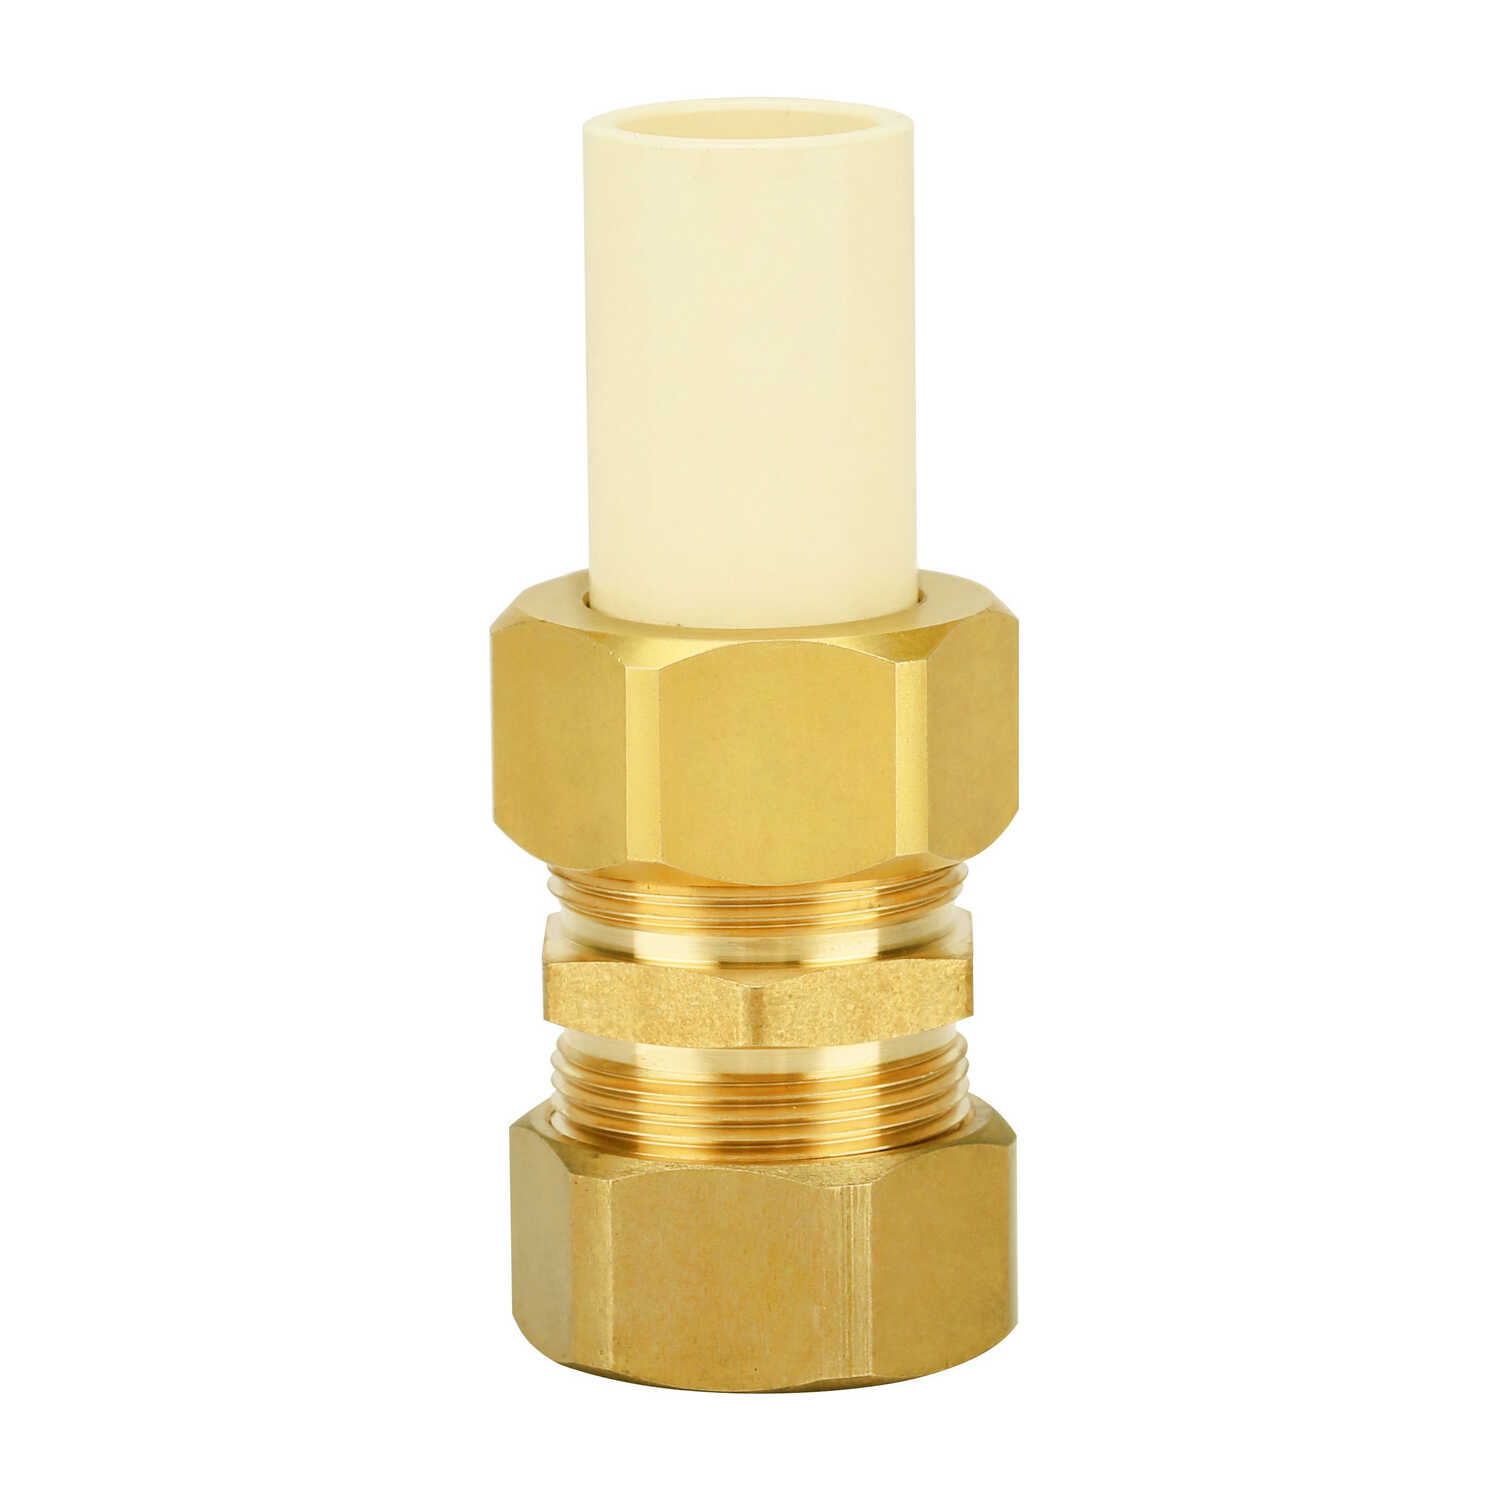 Homewerks  Schedule 40  3/4 in. Compression   x 7/8 in. Dia. Compression  Brass  Adapter Coupling